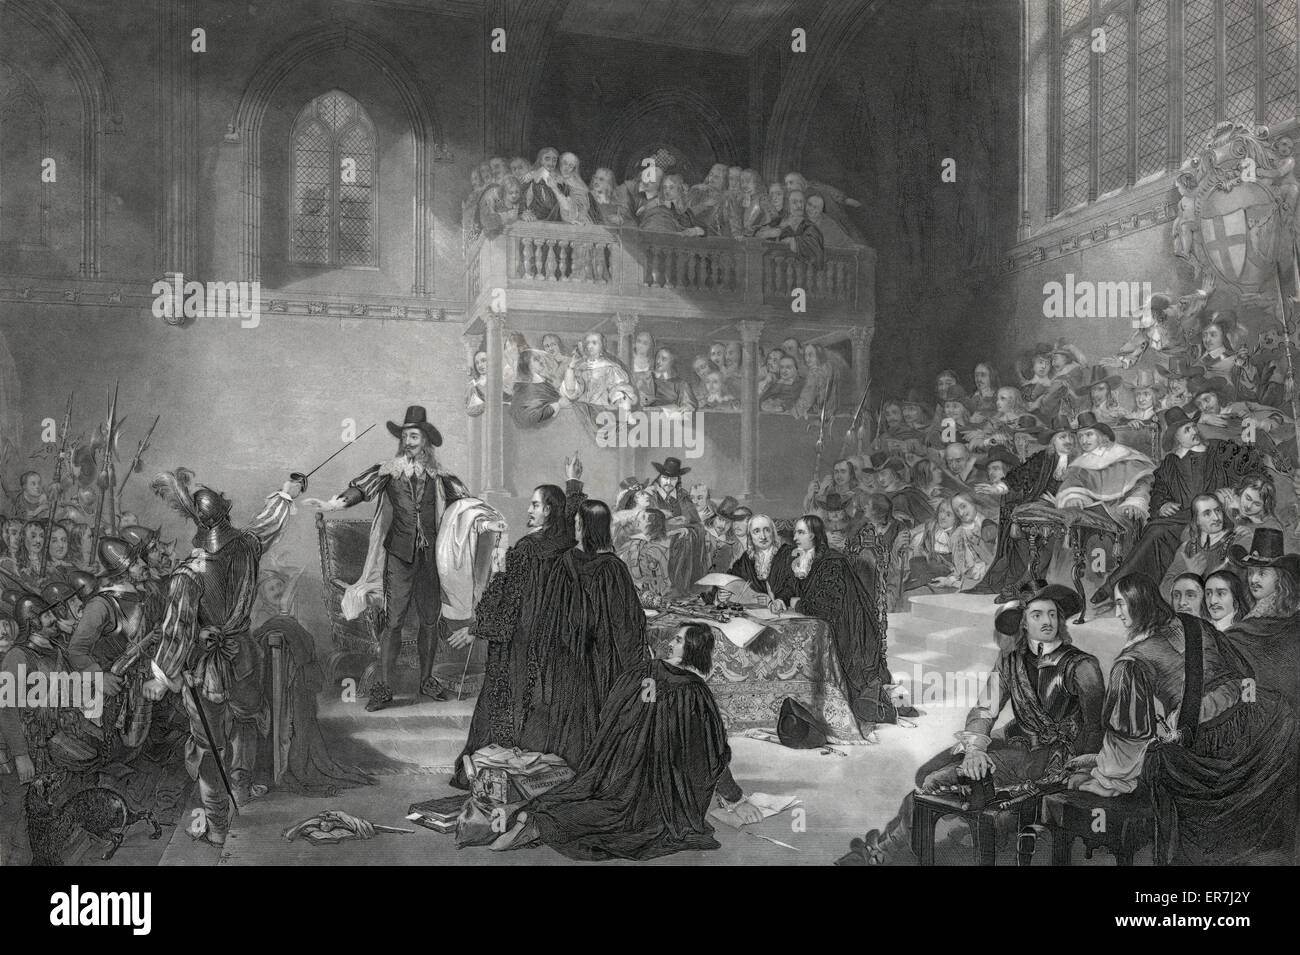 Trial of King Charles 1st in Westminster hall 1649. - Stock Image